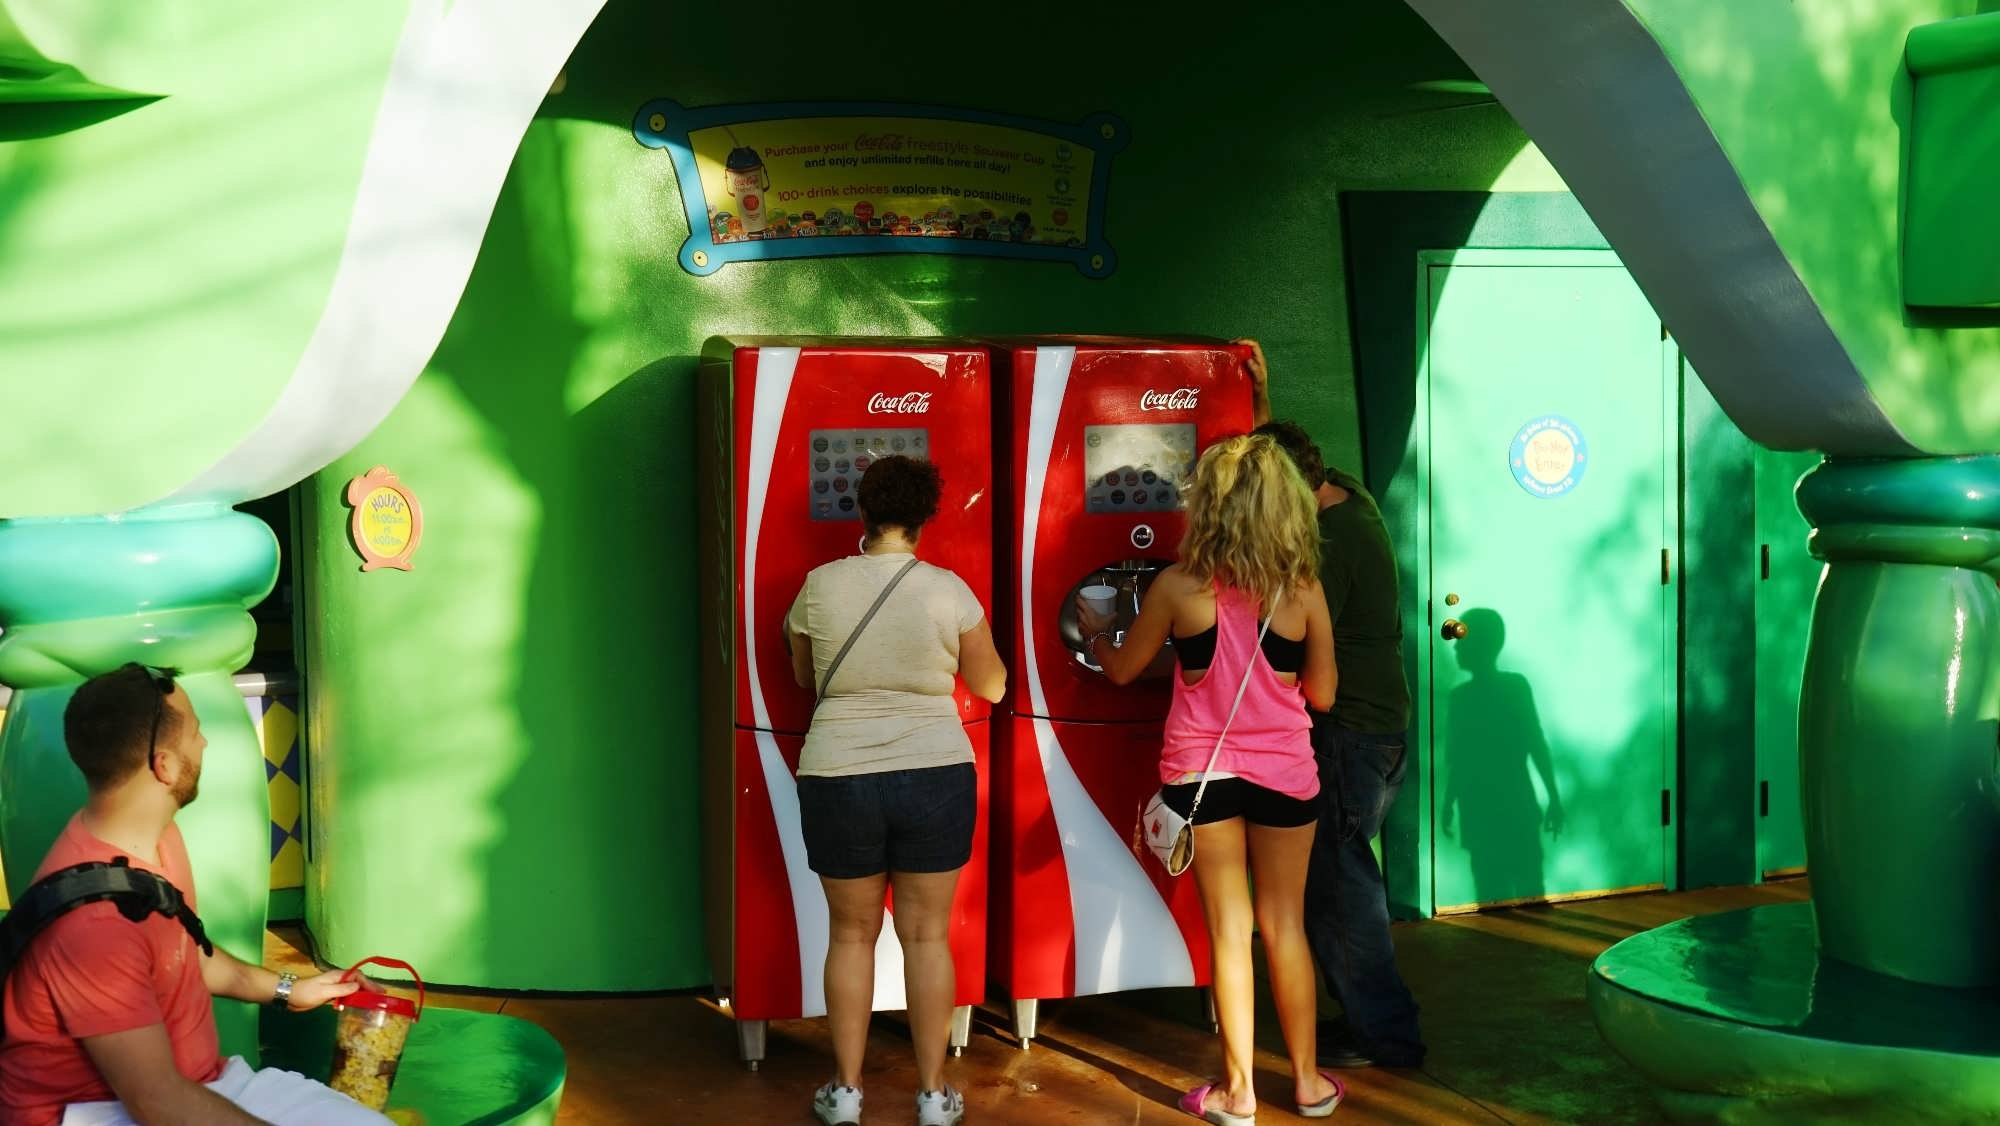 Coke Freestyle station at IOA's Seuss Landing